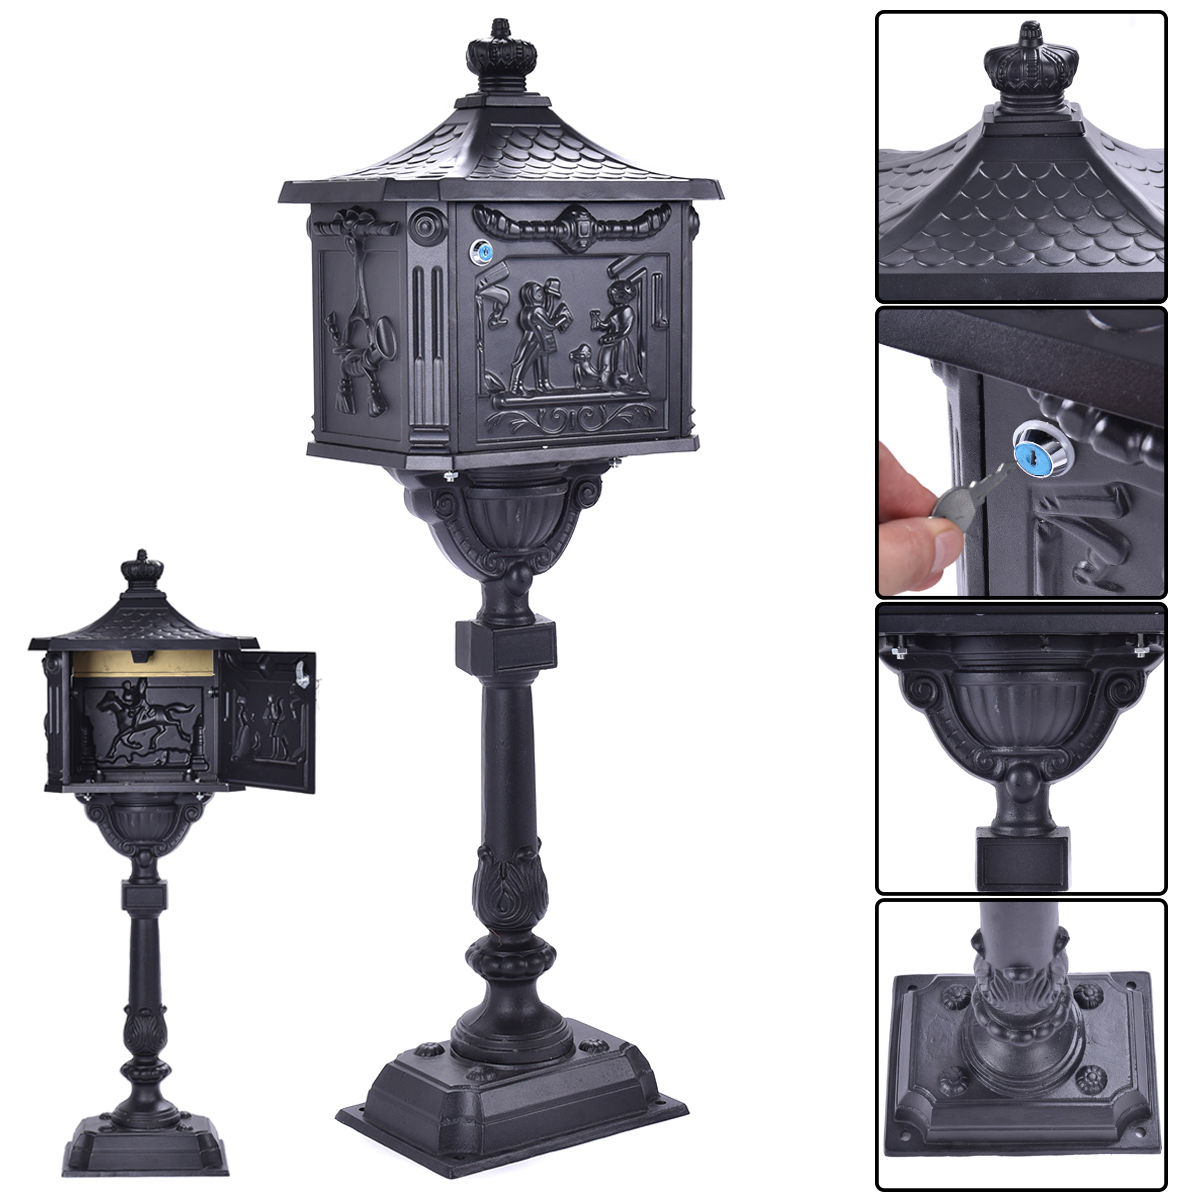 Costway Mail Box Heavy Duty Mailbox Postal Box Security Cast Aluminum Vertical Pedestal by Mailboxes